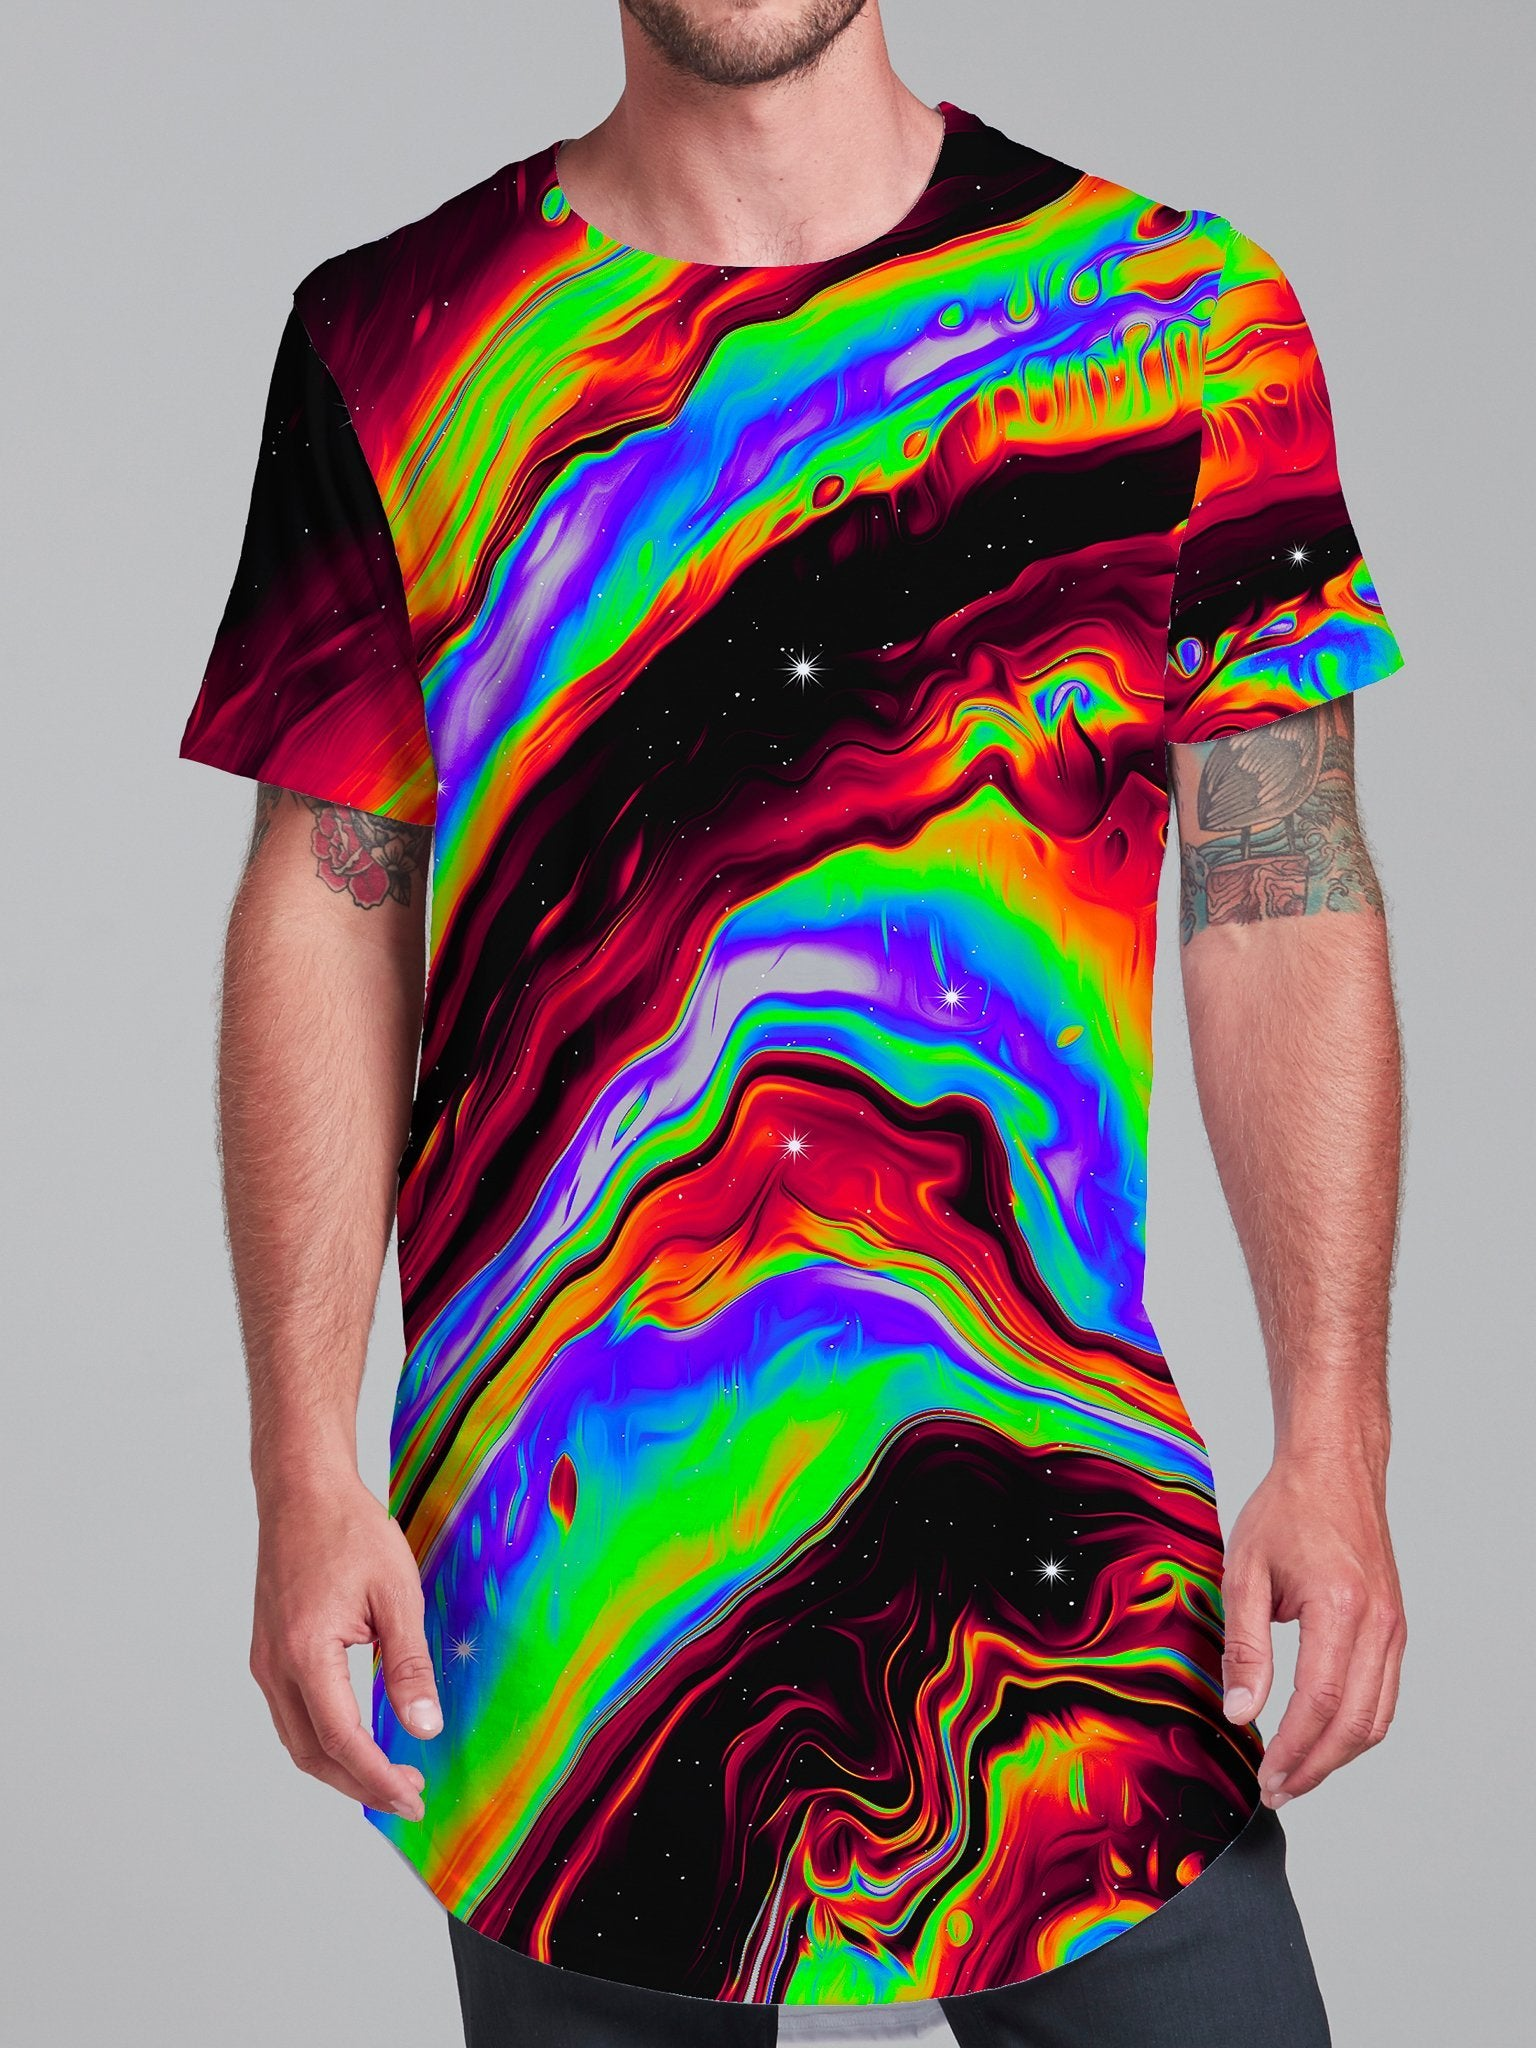 Neon Venus Fly Trap Unisex Tall Tee Mens Tall Tee Electro Threads